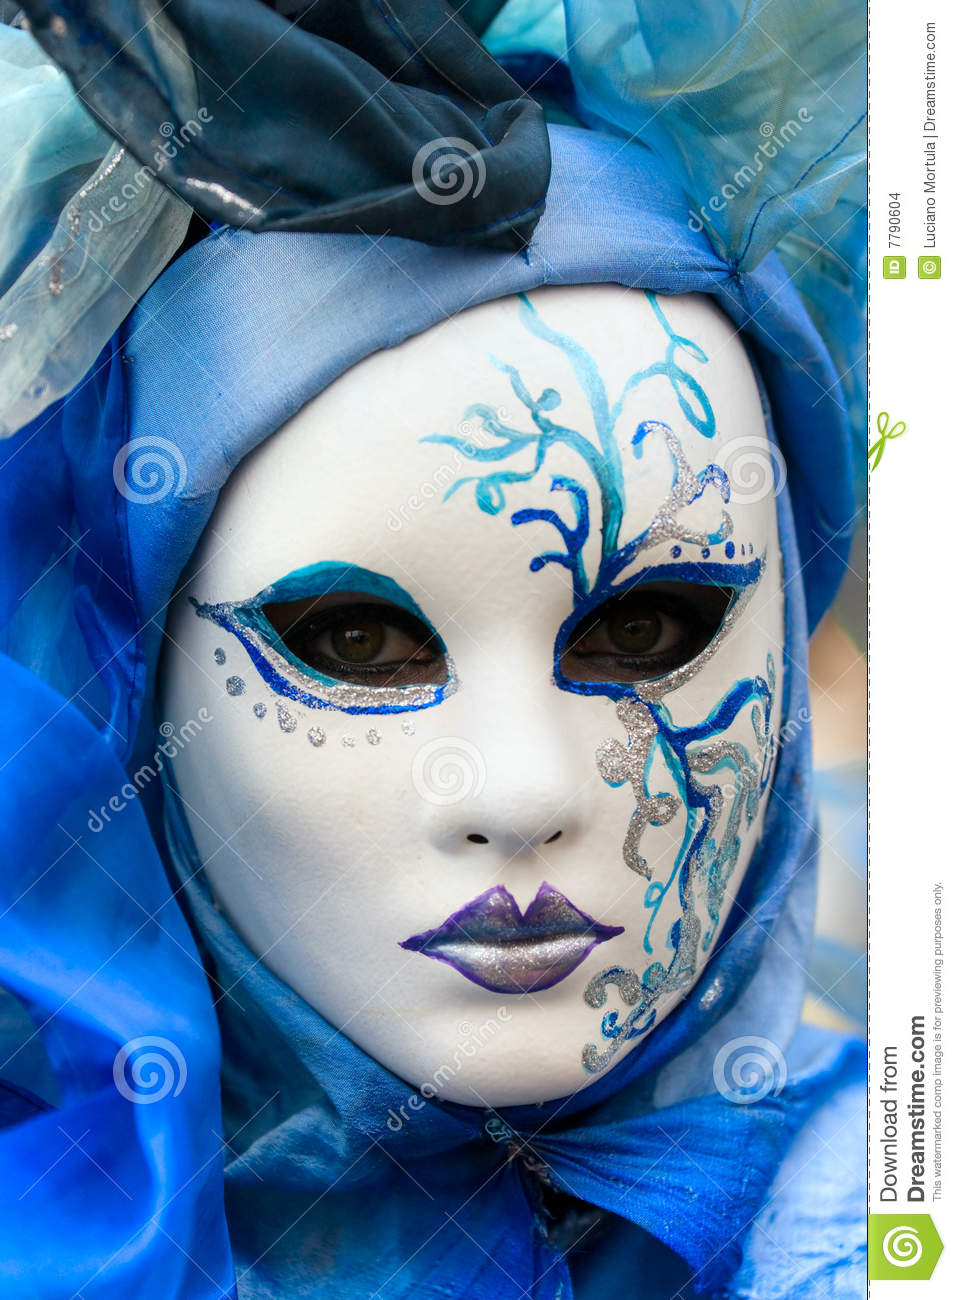 More similar stock images of ` Venice Mask, Carnival. `